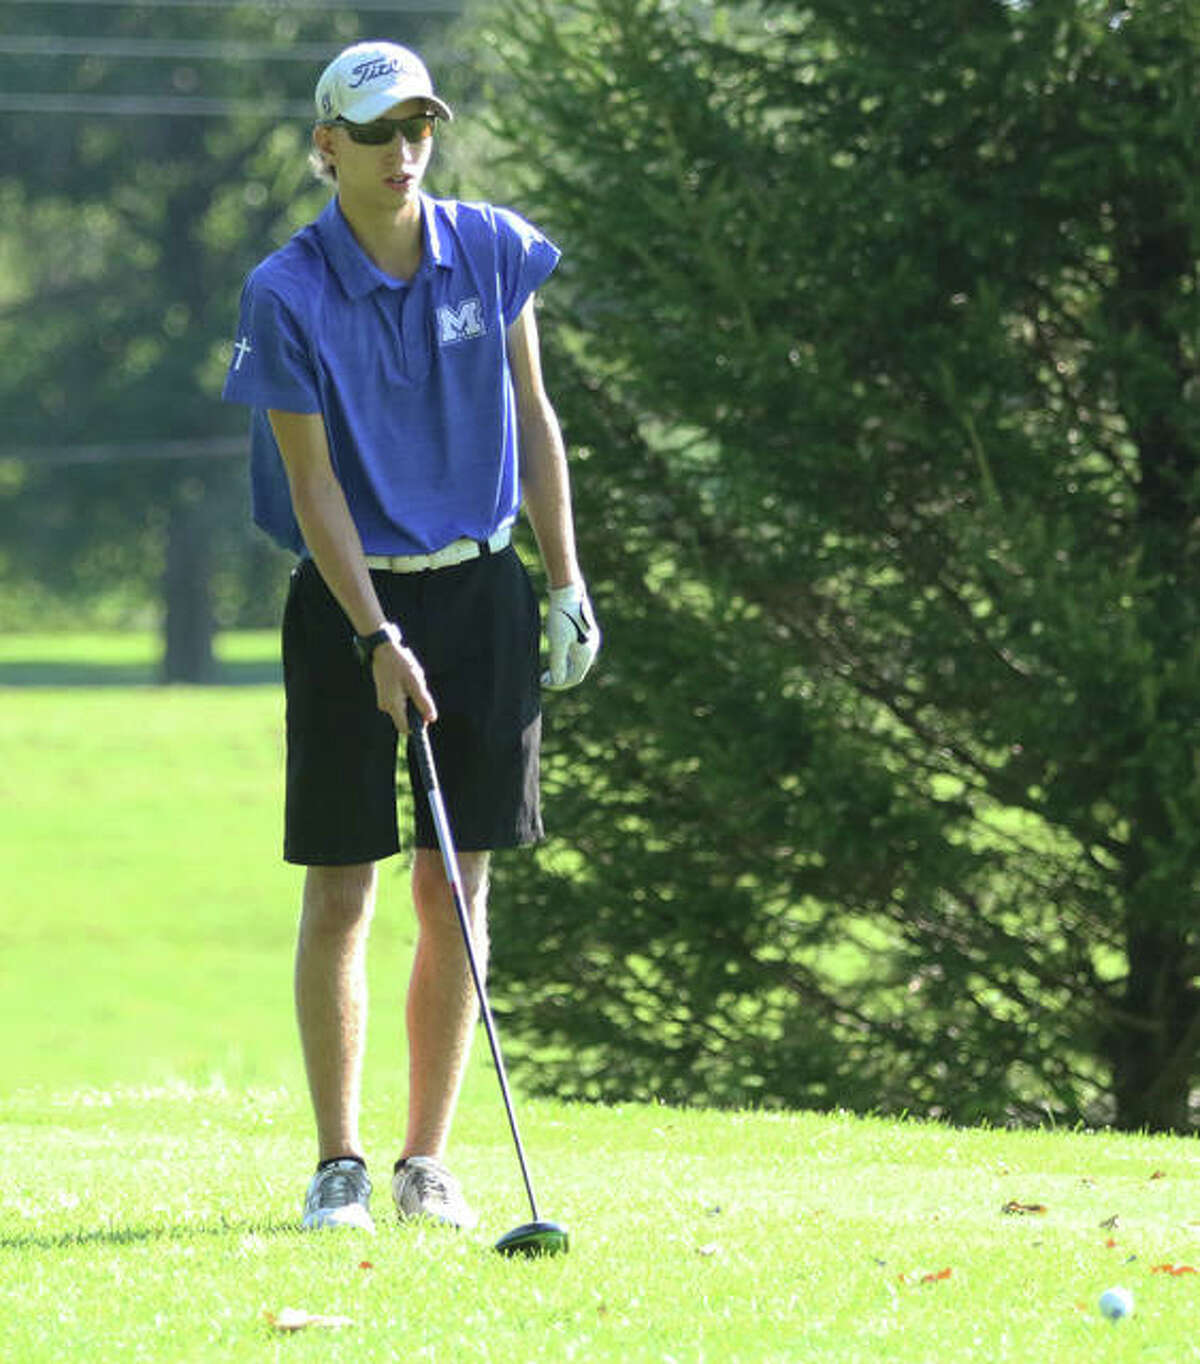 For seniors like Marquette Catholic's William Roderfeld, PGA pro Mike Suhre of Edwardsville hopes to provide an opportunity for a golf postseason that the IHSA has taken away because of COVID-19.